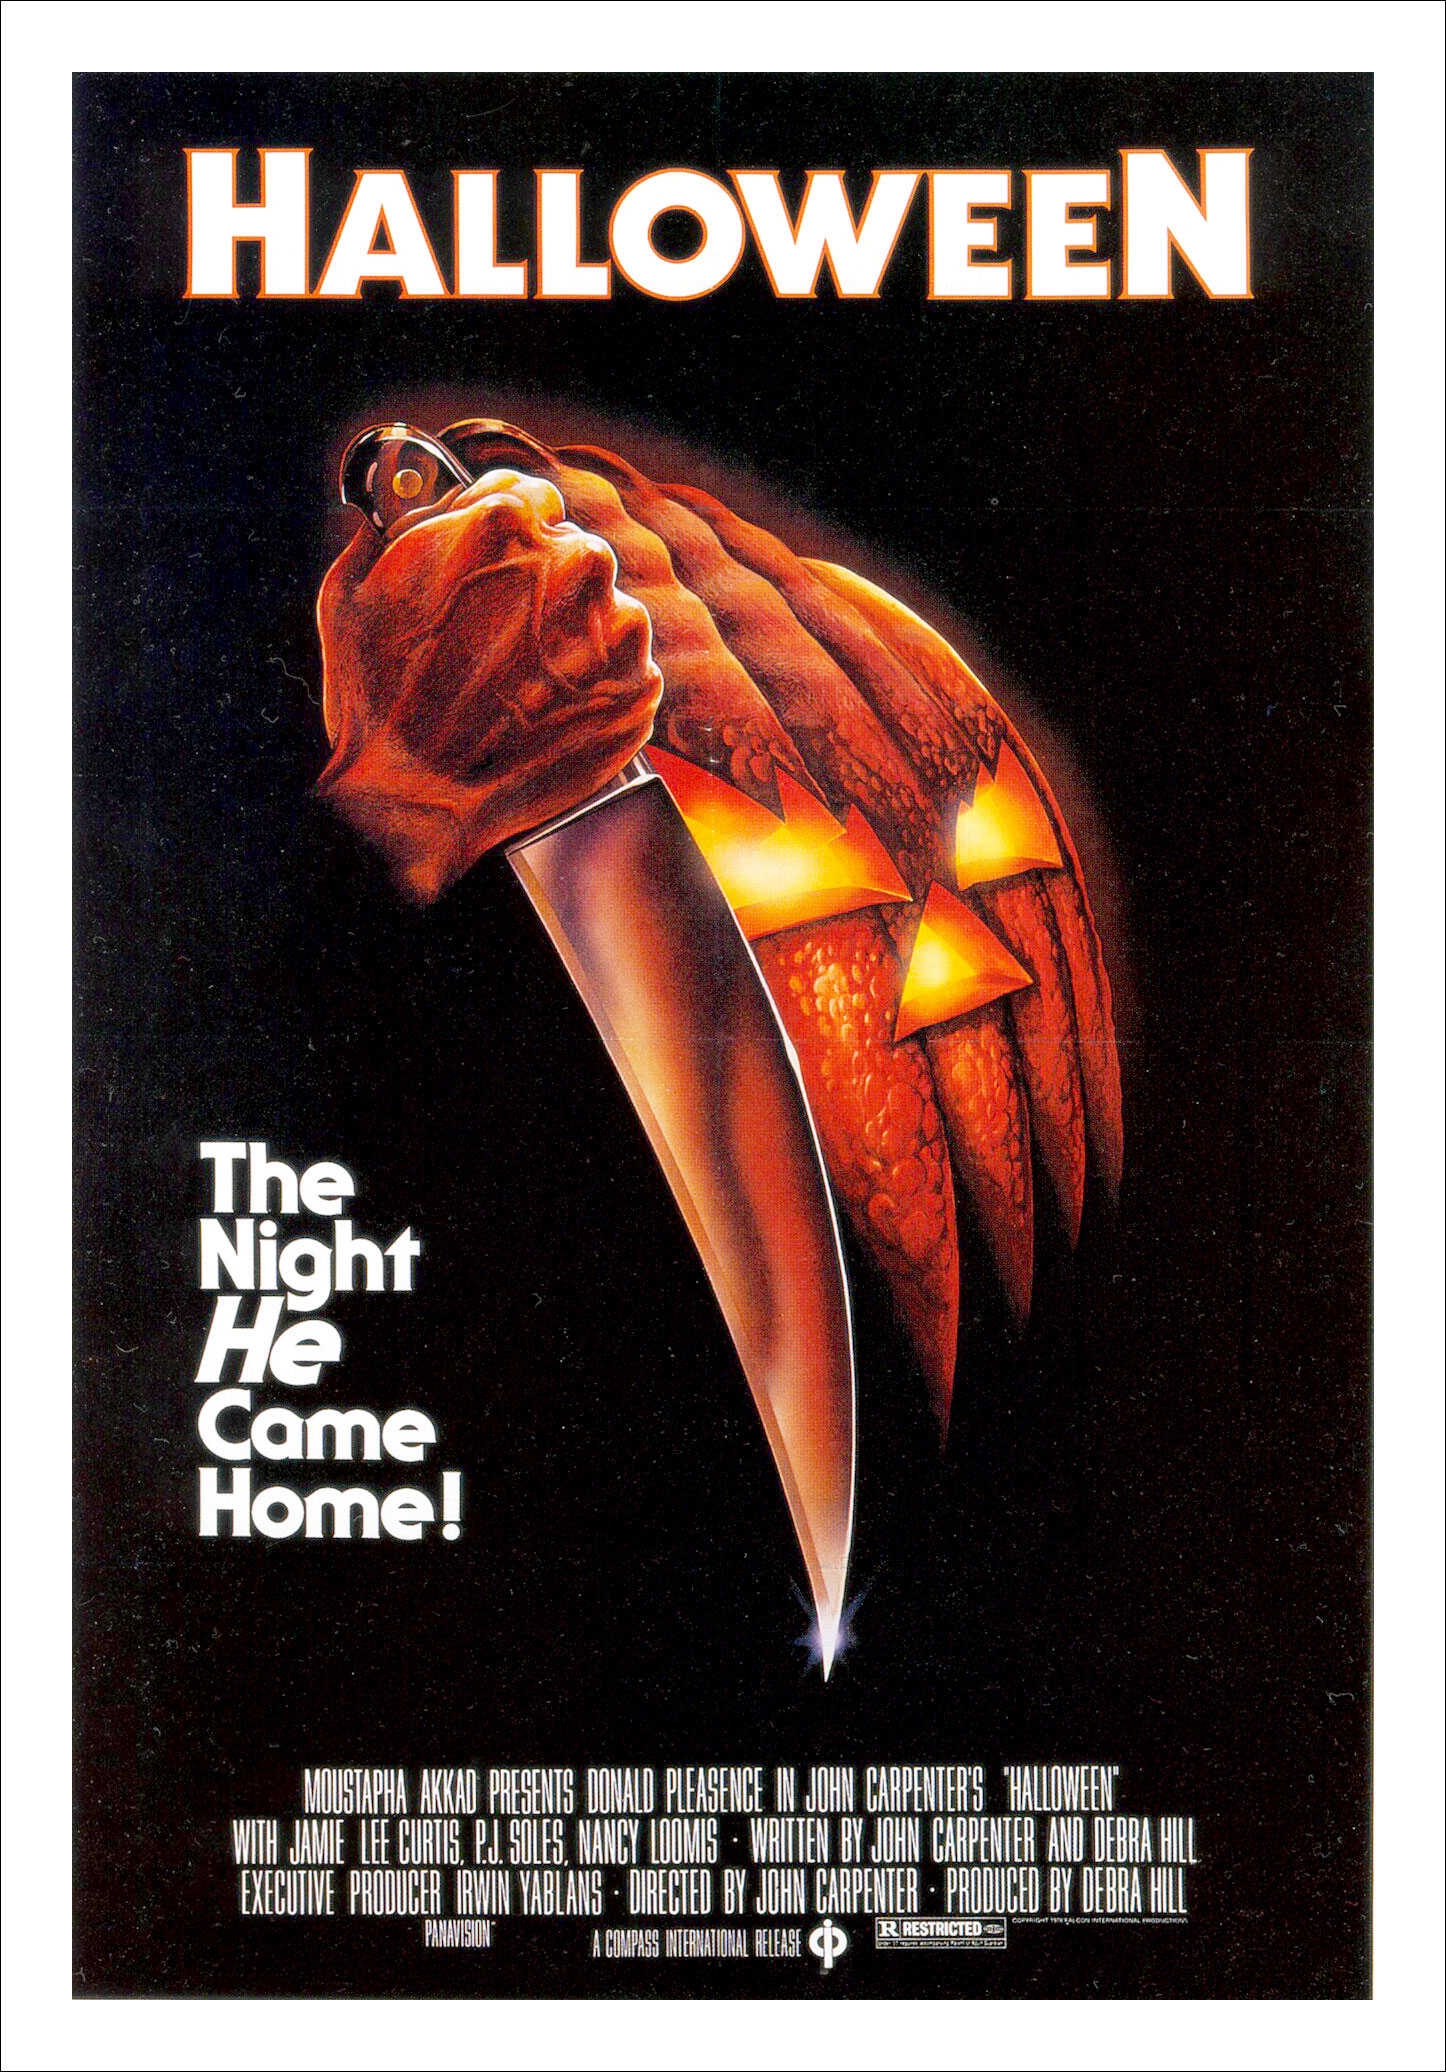 October 31st, 2014: Halloween (1978) « The League of Dead Films